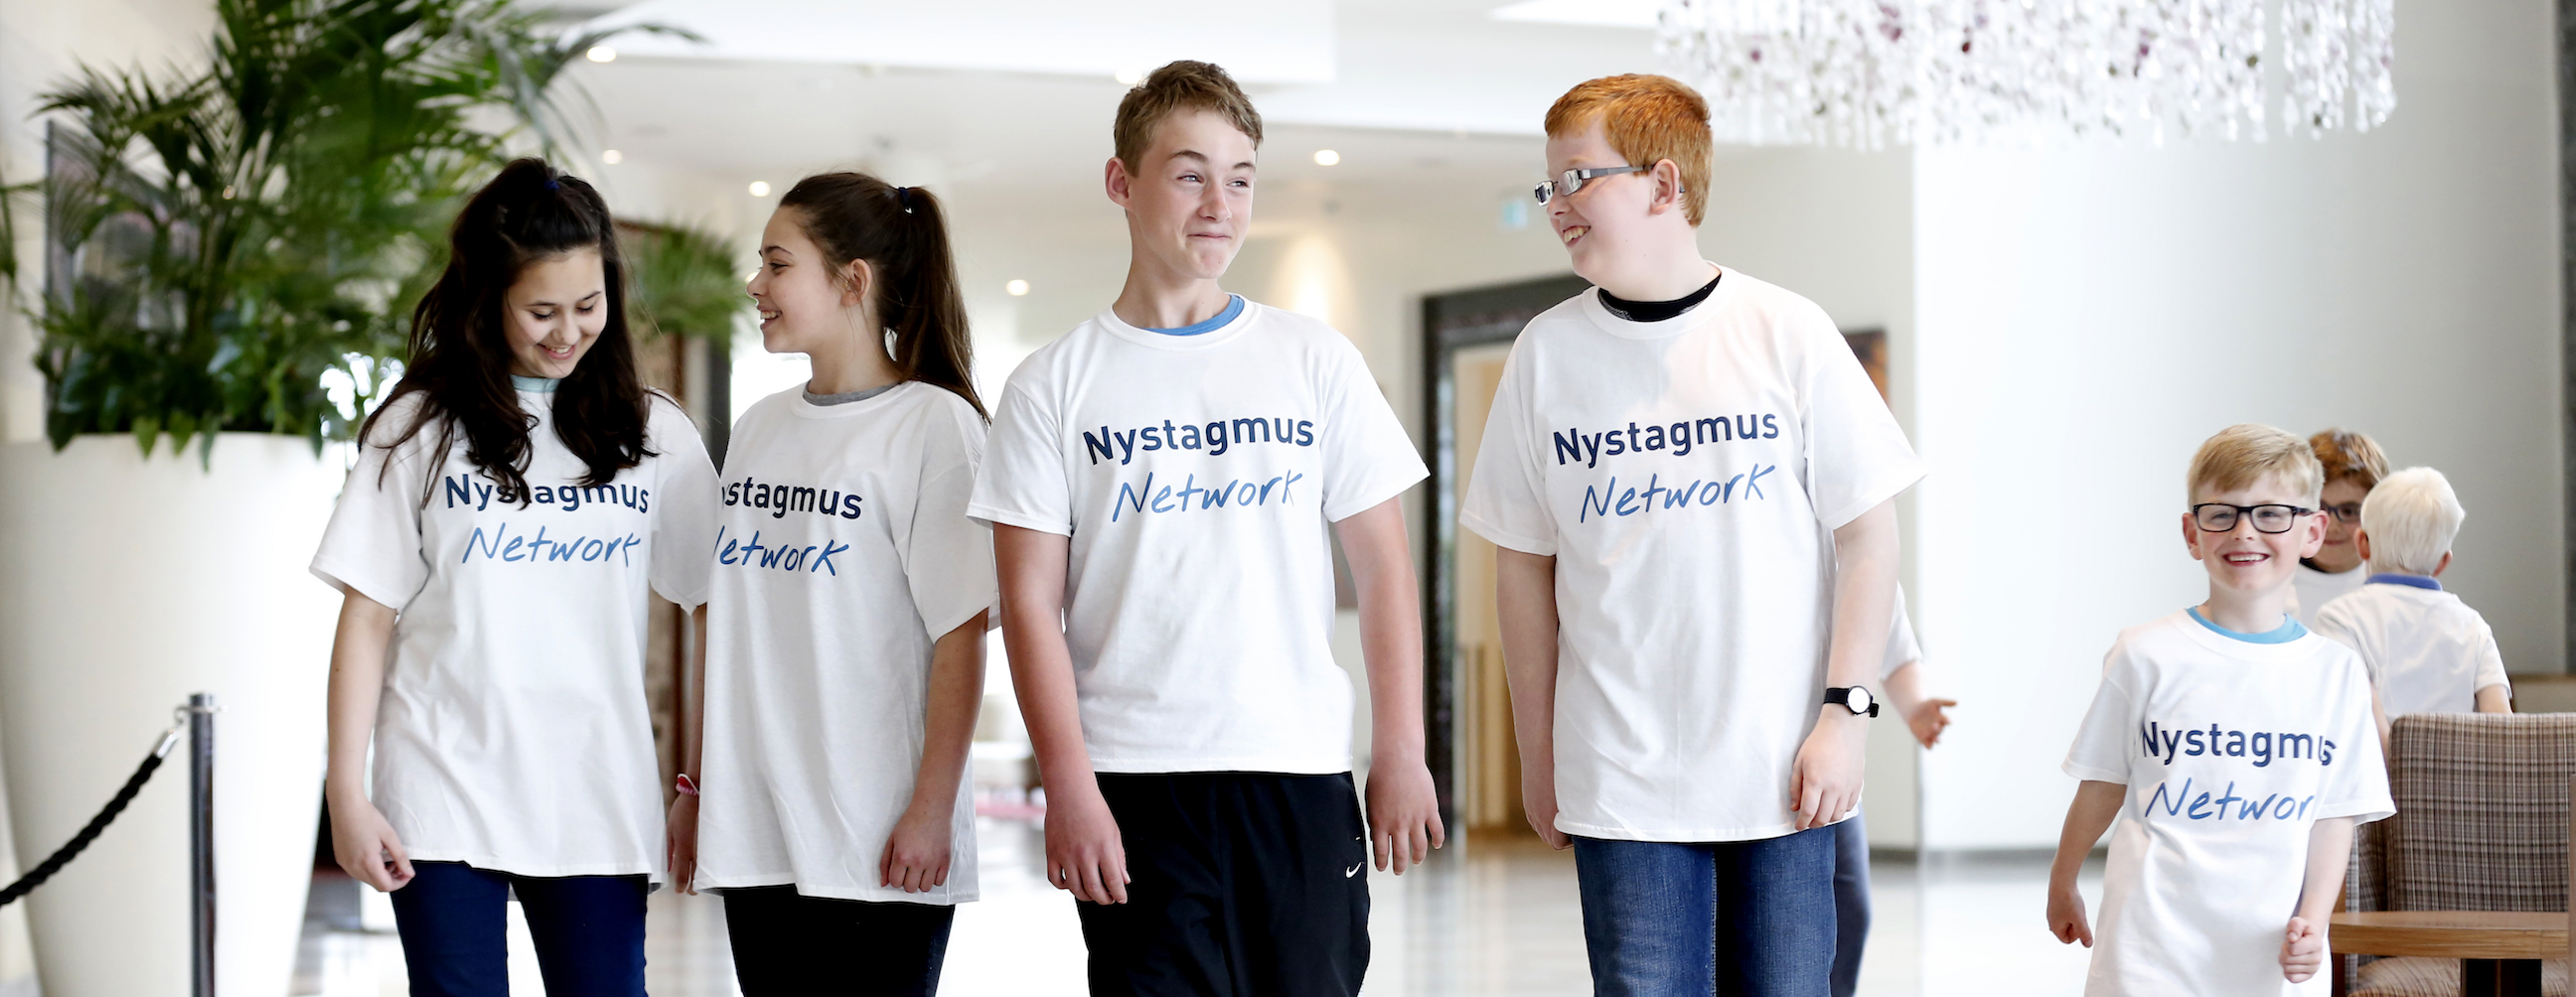 Request the bank details of the Nystagmus Network